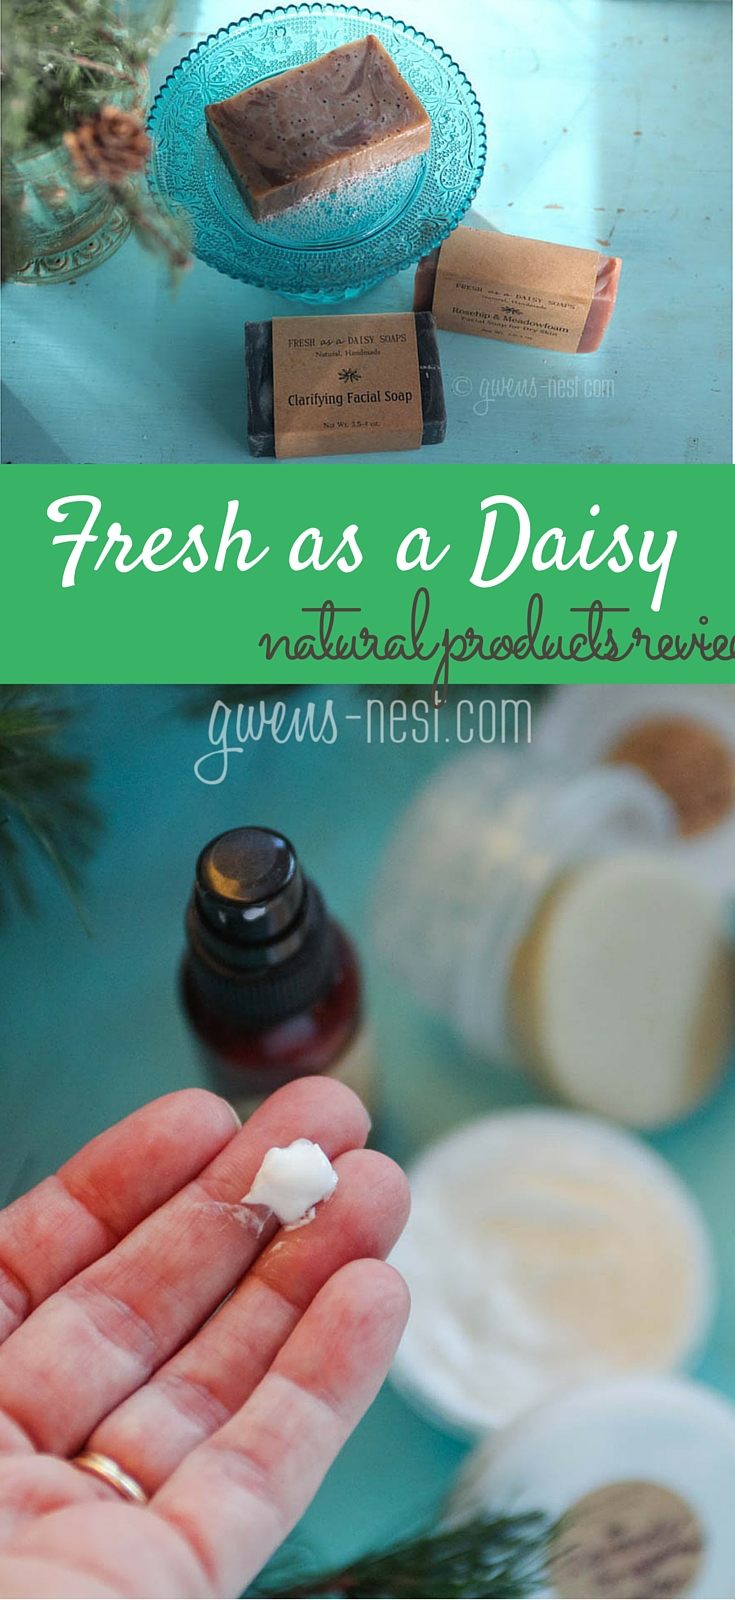 I LOVE homemade soaps and natural beauty products...Fresh as a Daisy makes great stuff.